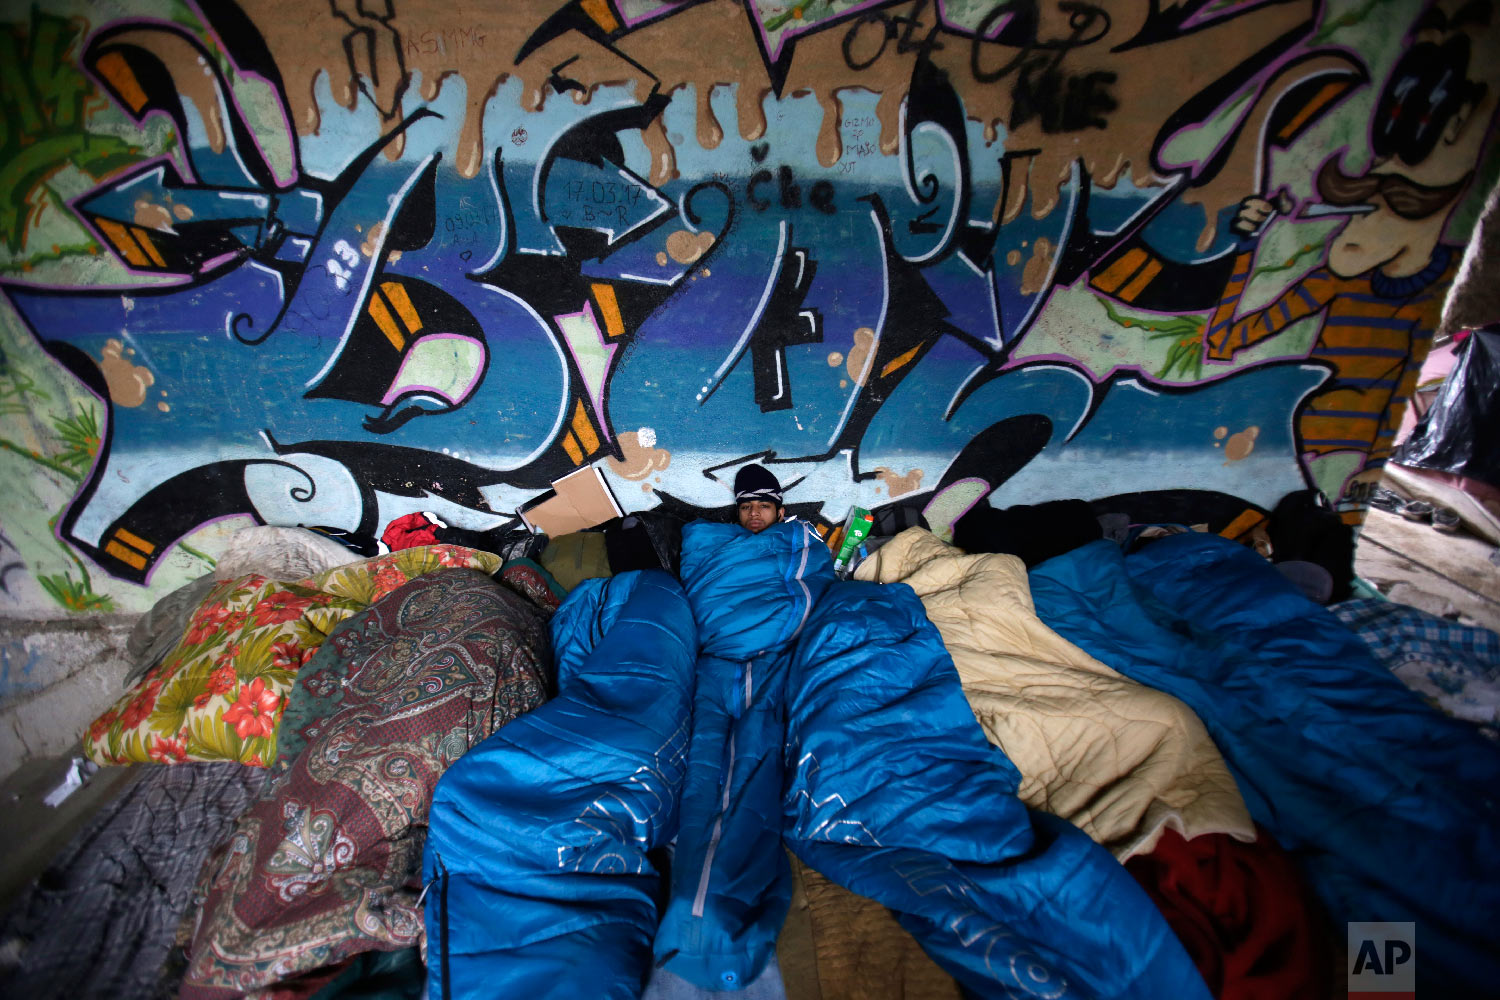 Migrants inside sleeping bags try to get warm, in Bihac, Bosnia, close to the border with Croatia on Wednesday, Nov. 28, 2018. (AP Photo/Amel Emric)